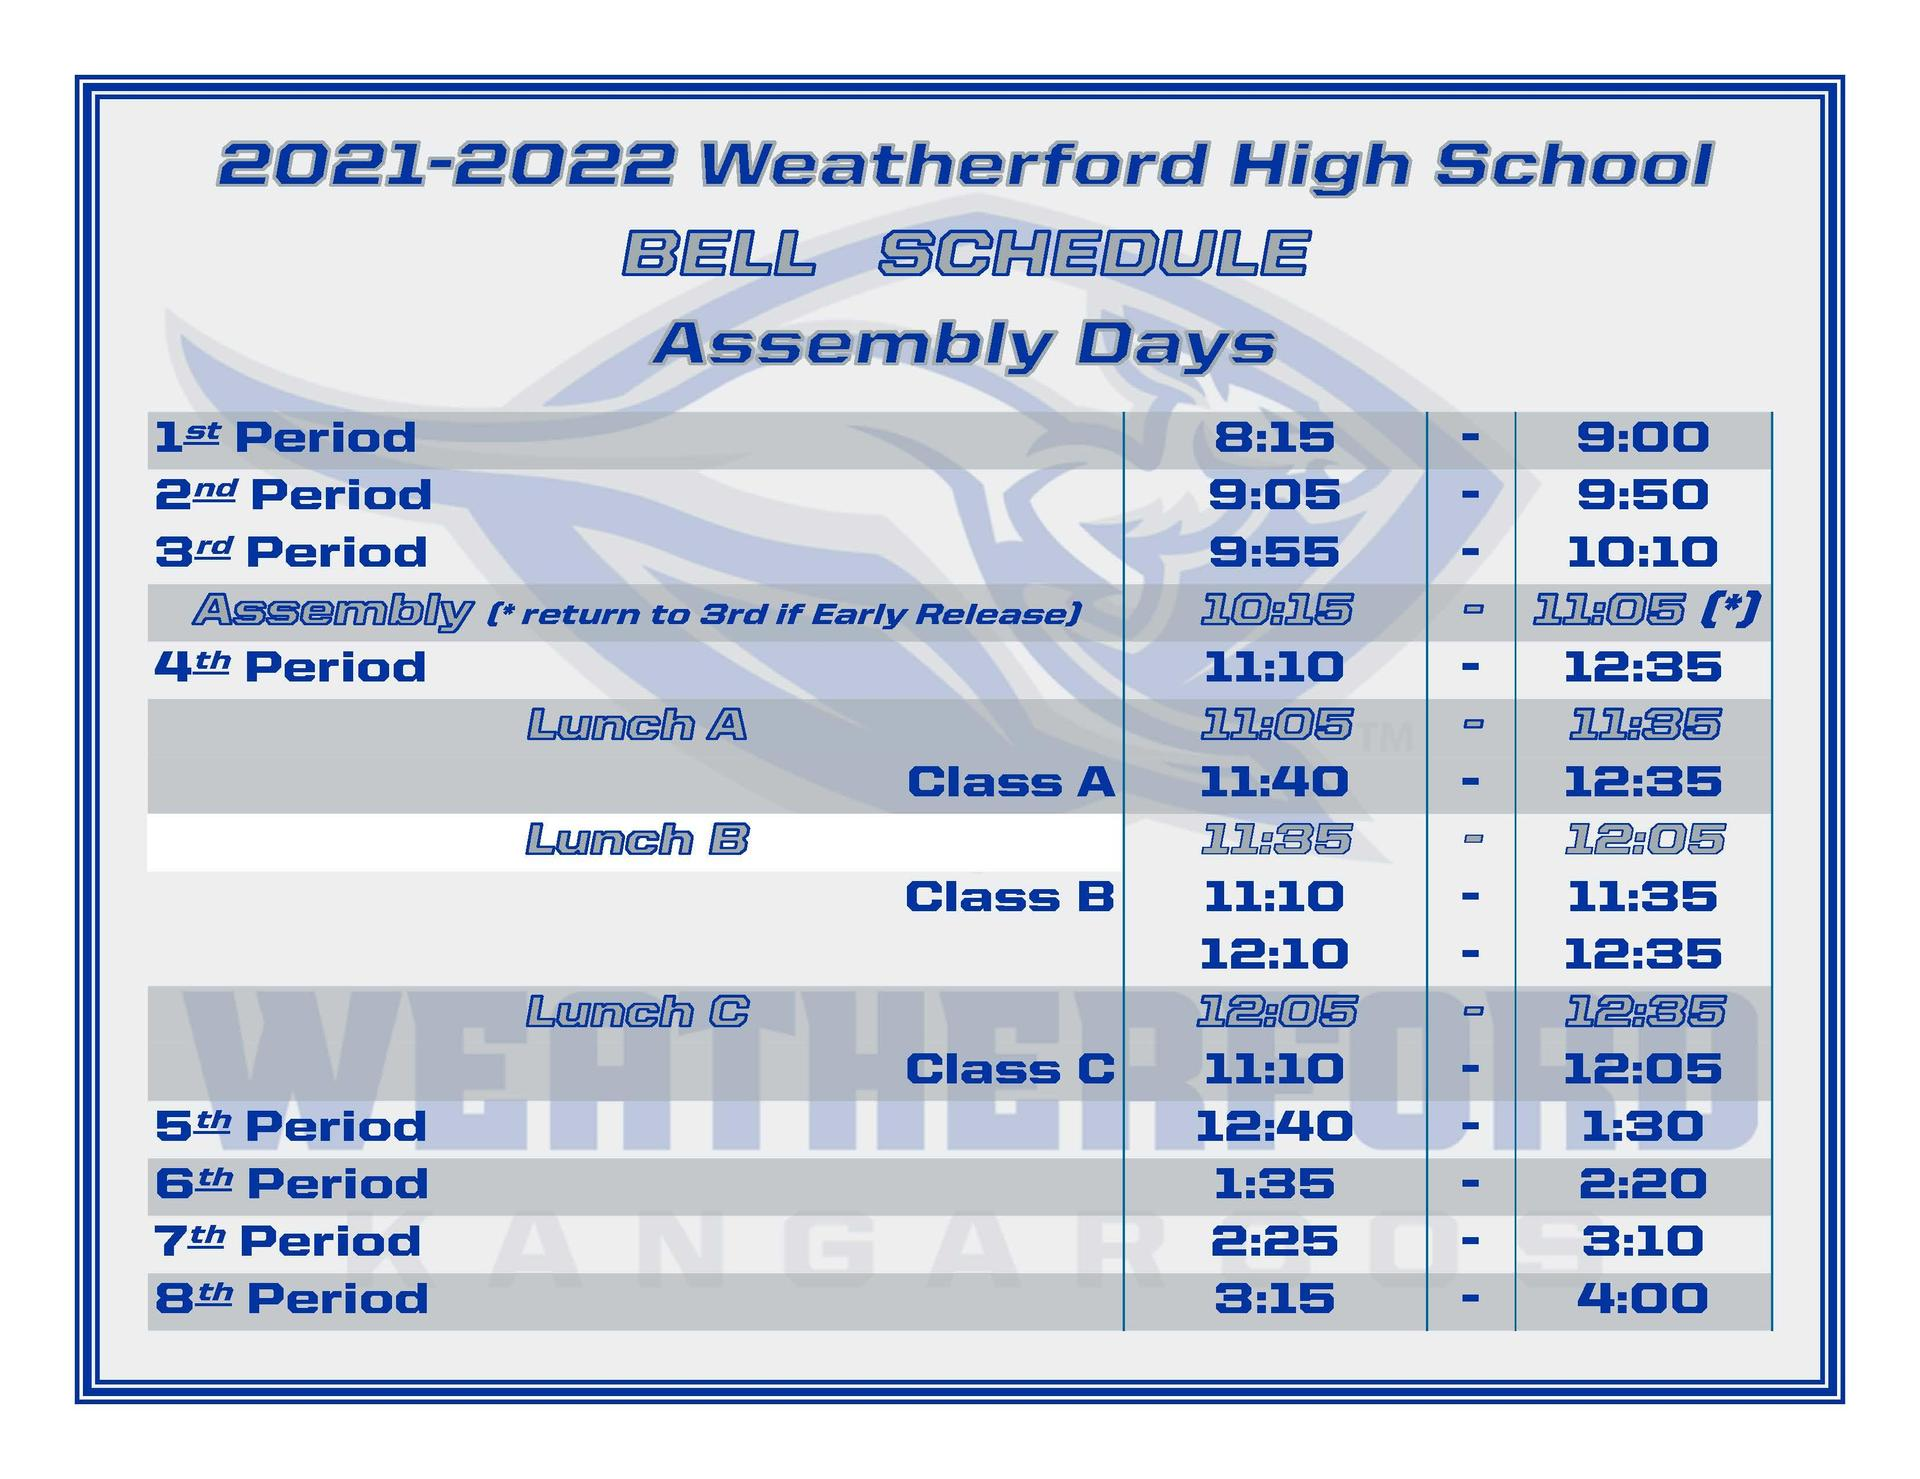 WHS Assembly Day Bell Schedule